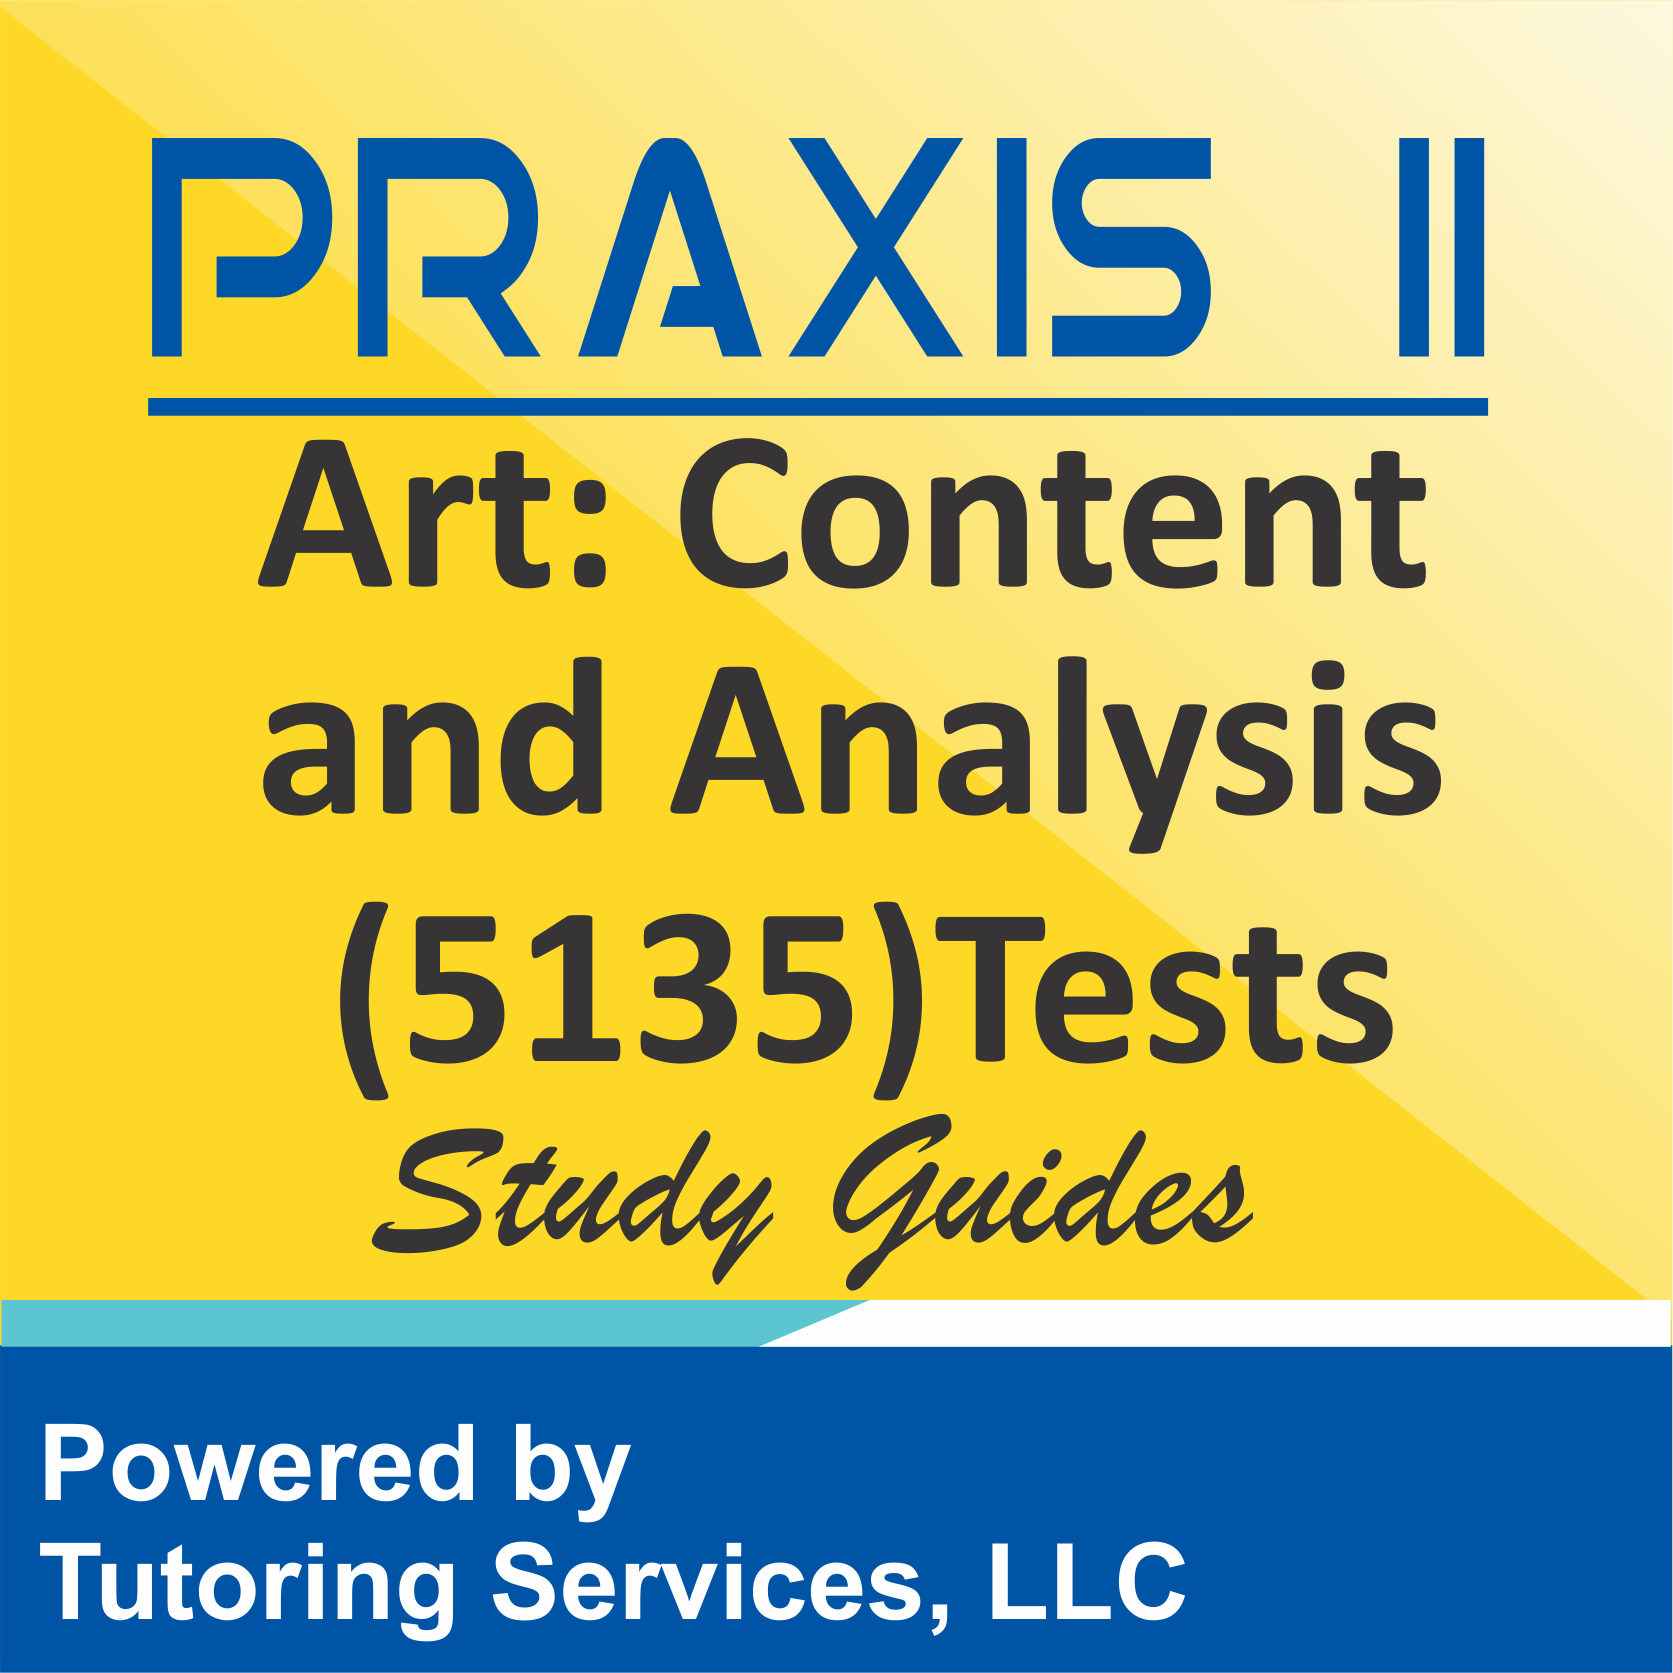 Praxis II Art: Content and Analysis (5135) Examination Information